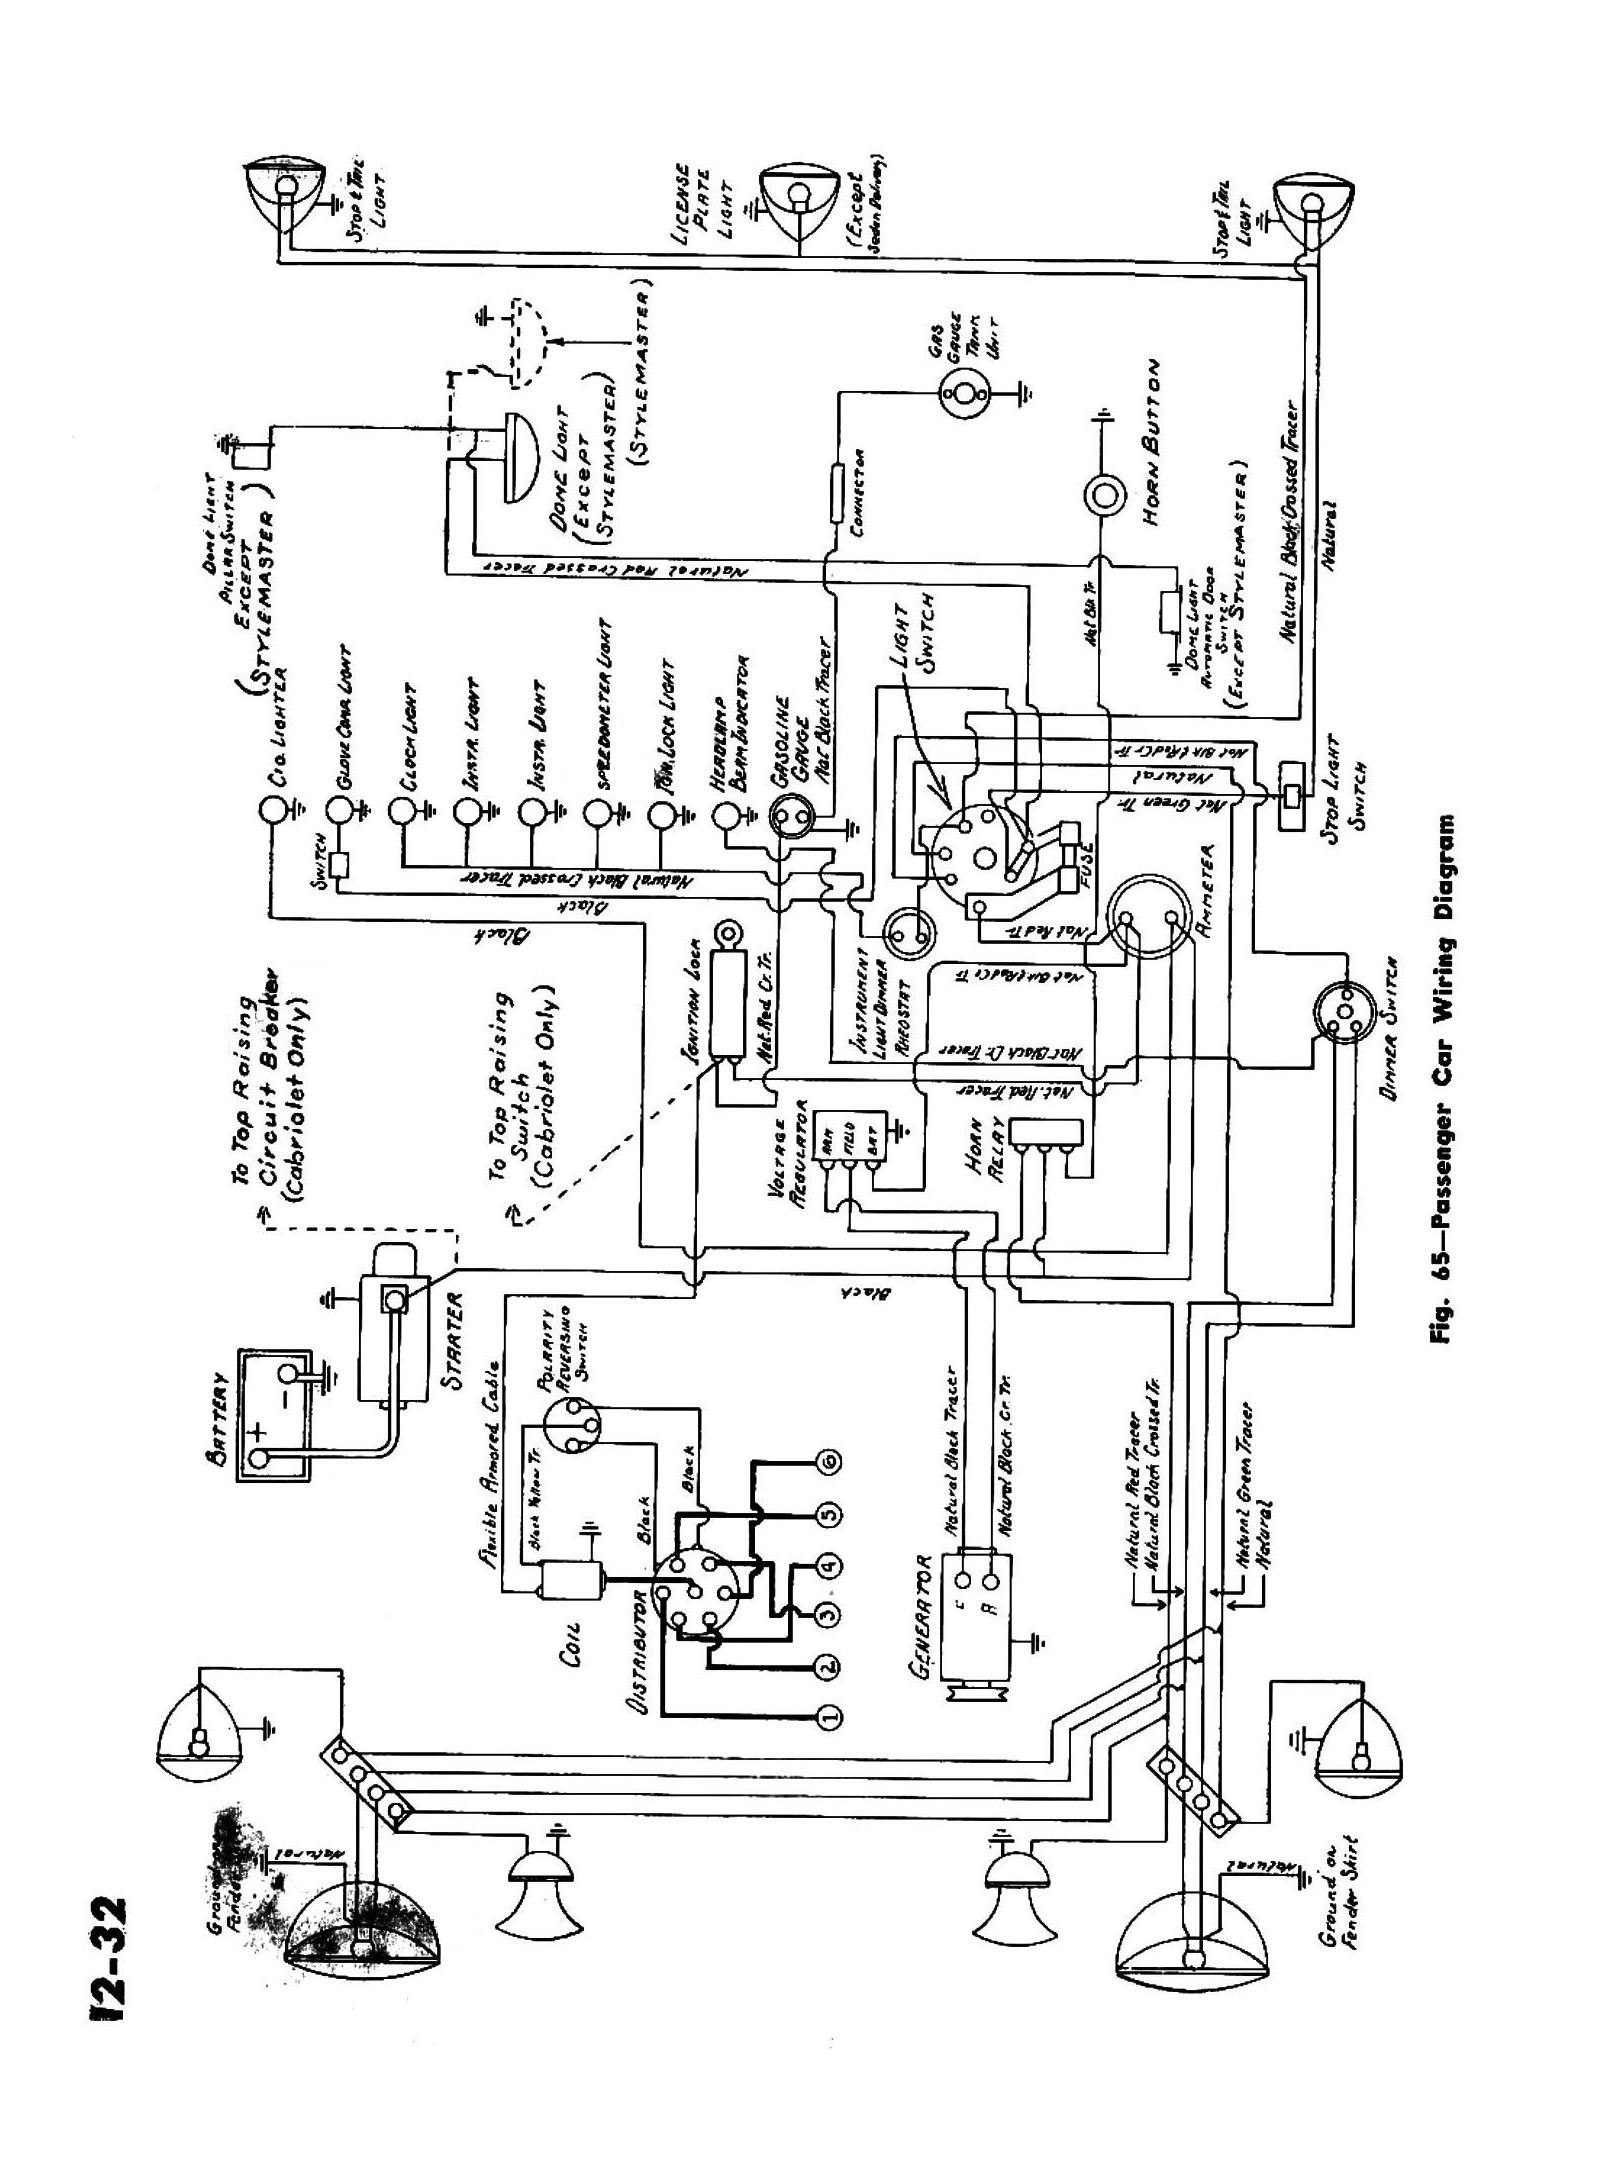 car wiring diagrams pdf car engine schematic and wiring diagram  : car diagrams - findchart.co